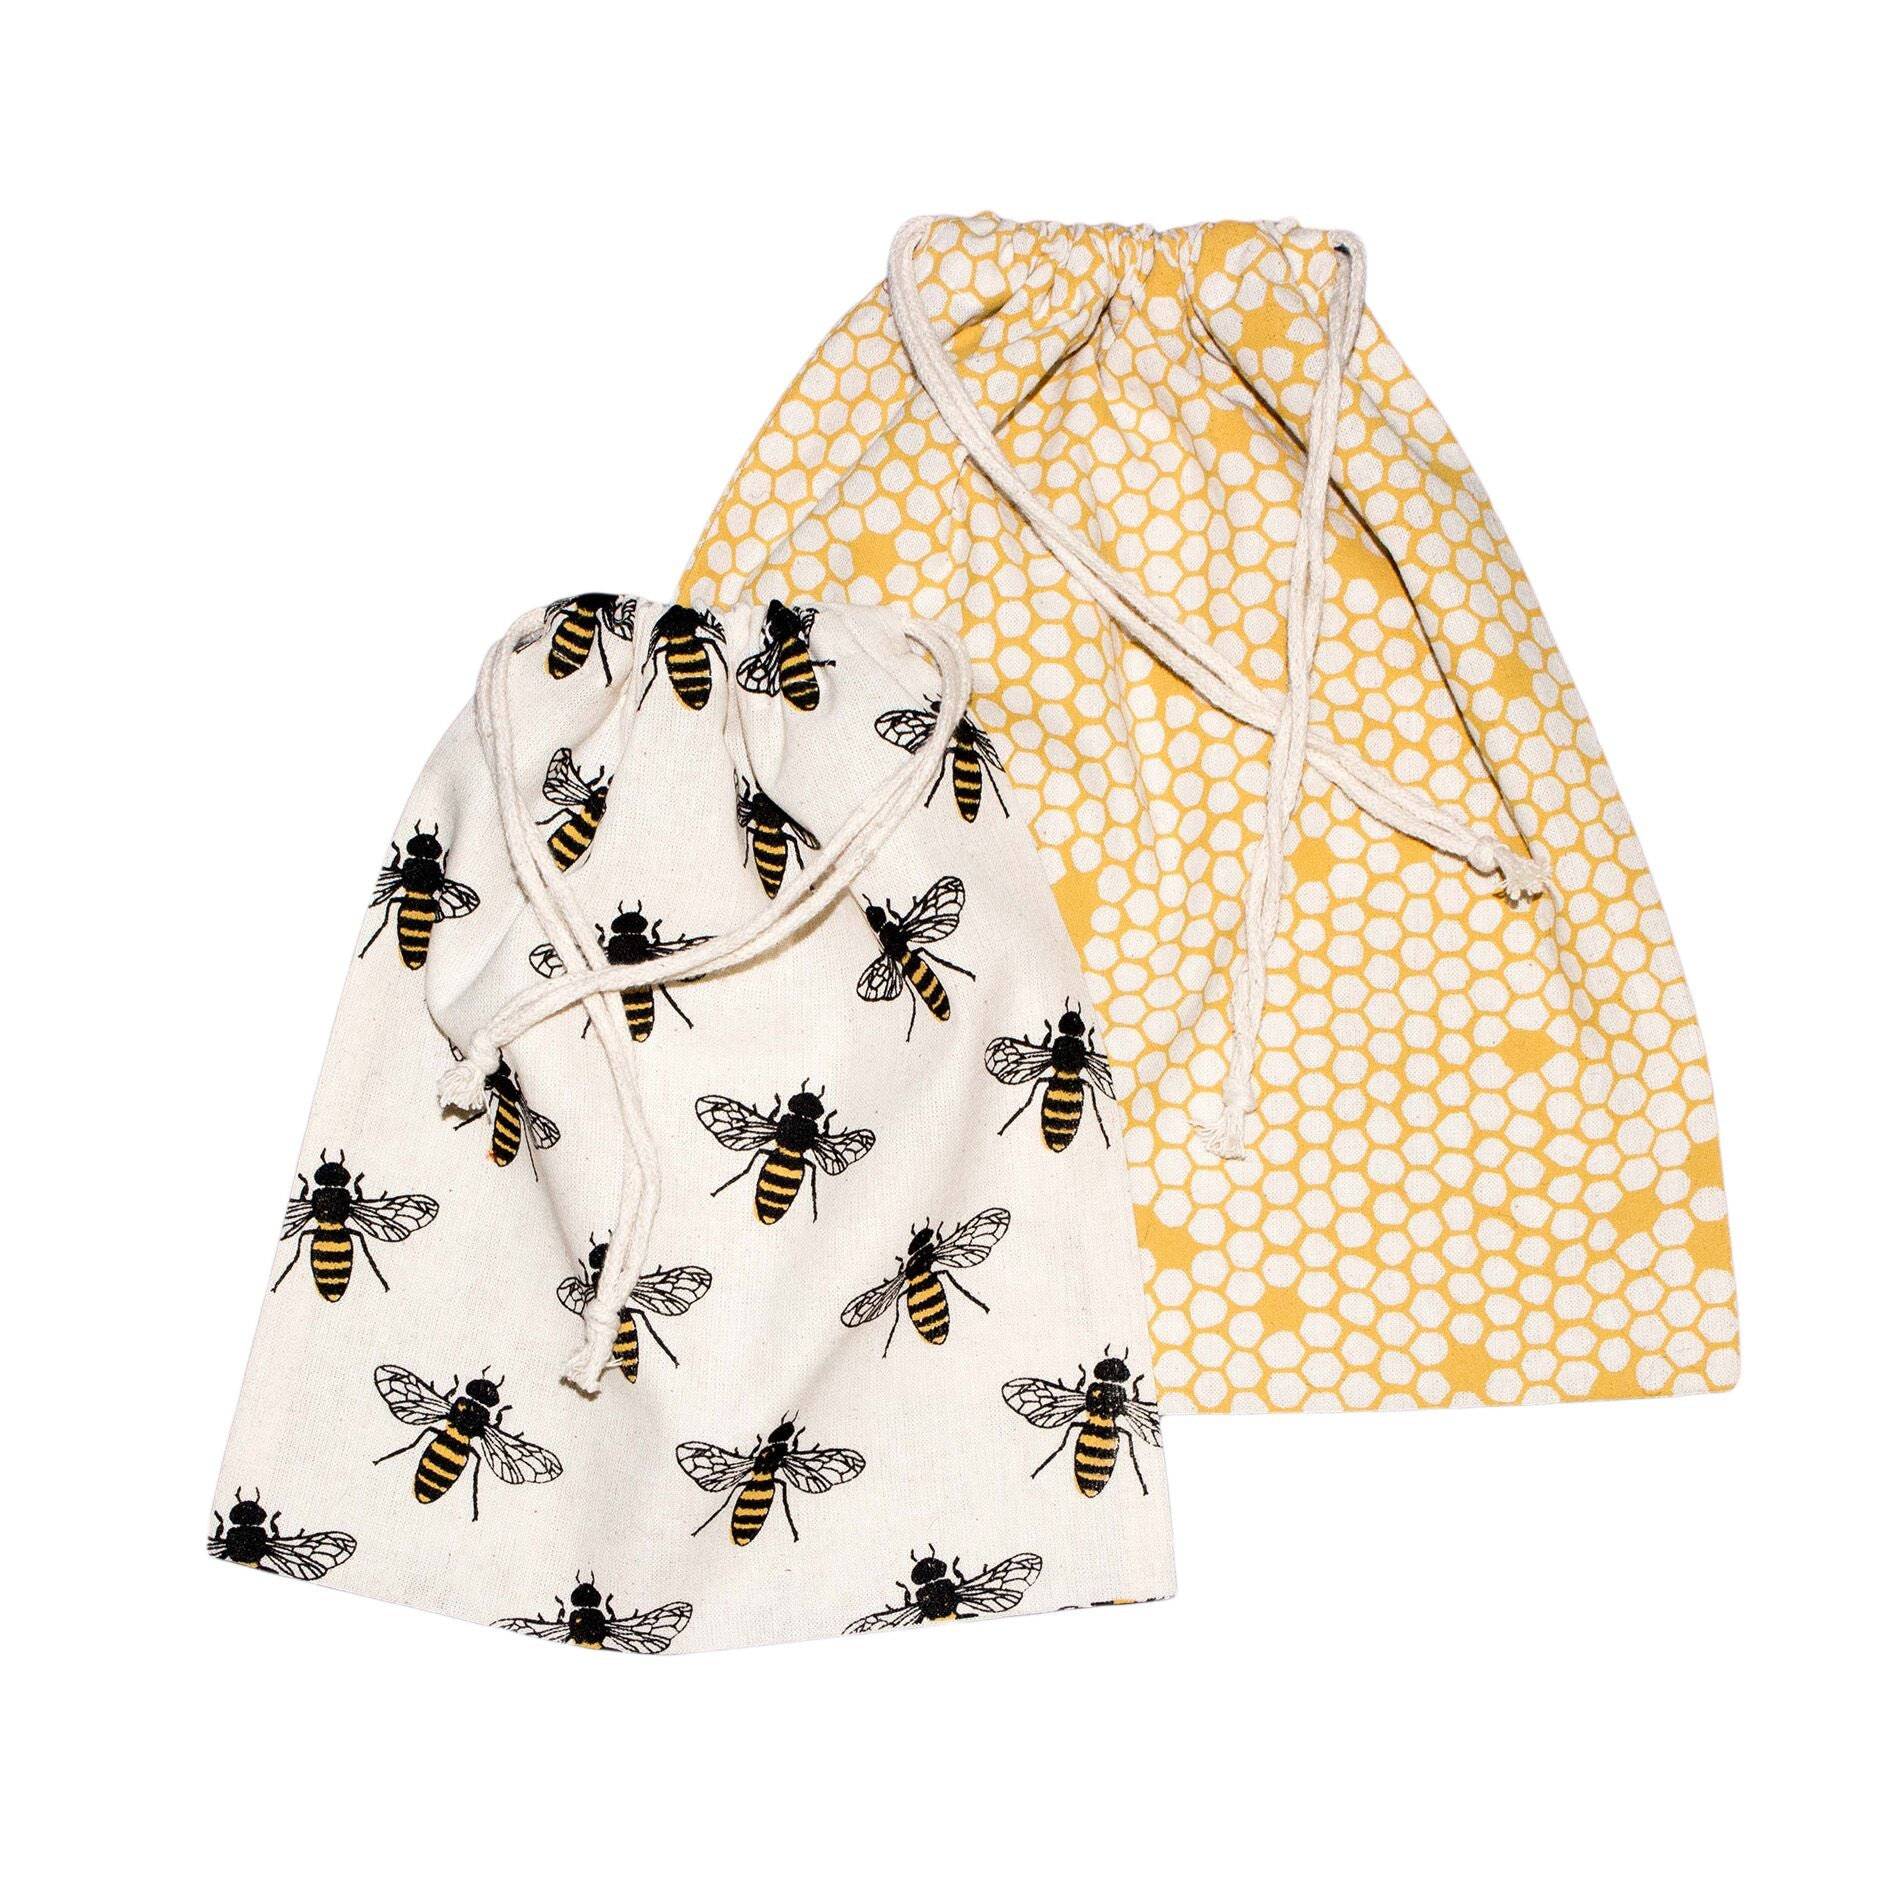 Cotton Produce Bags (Bees)